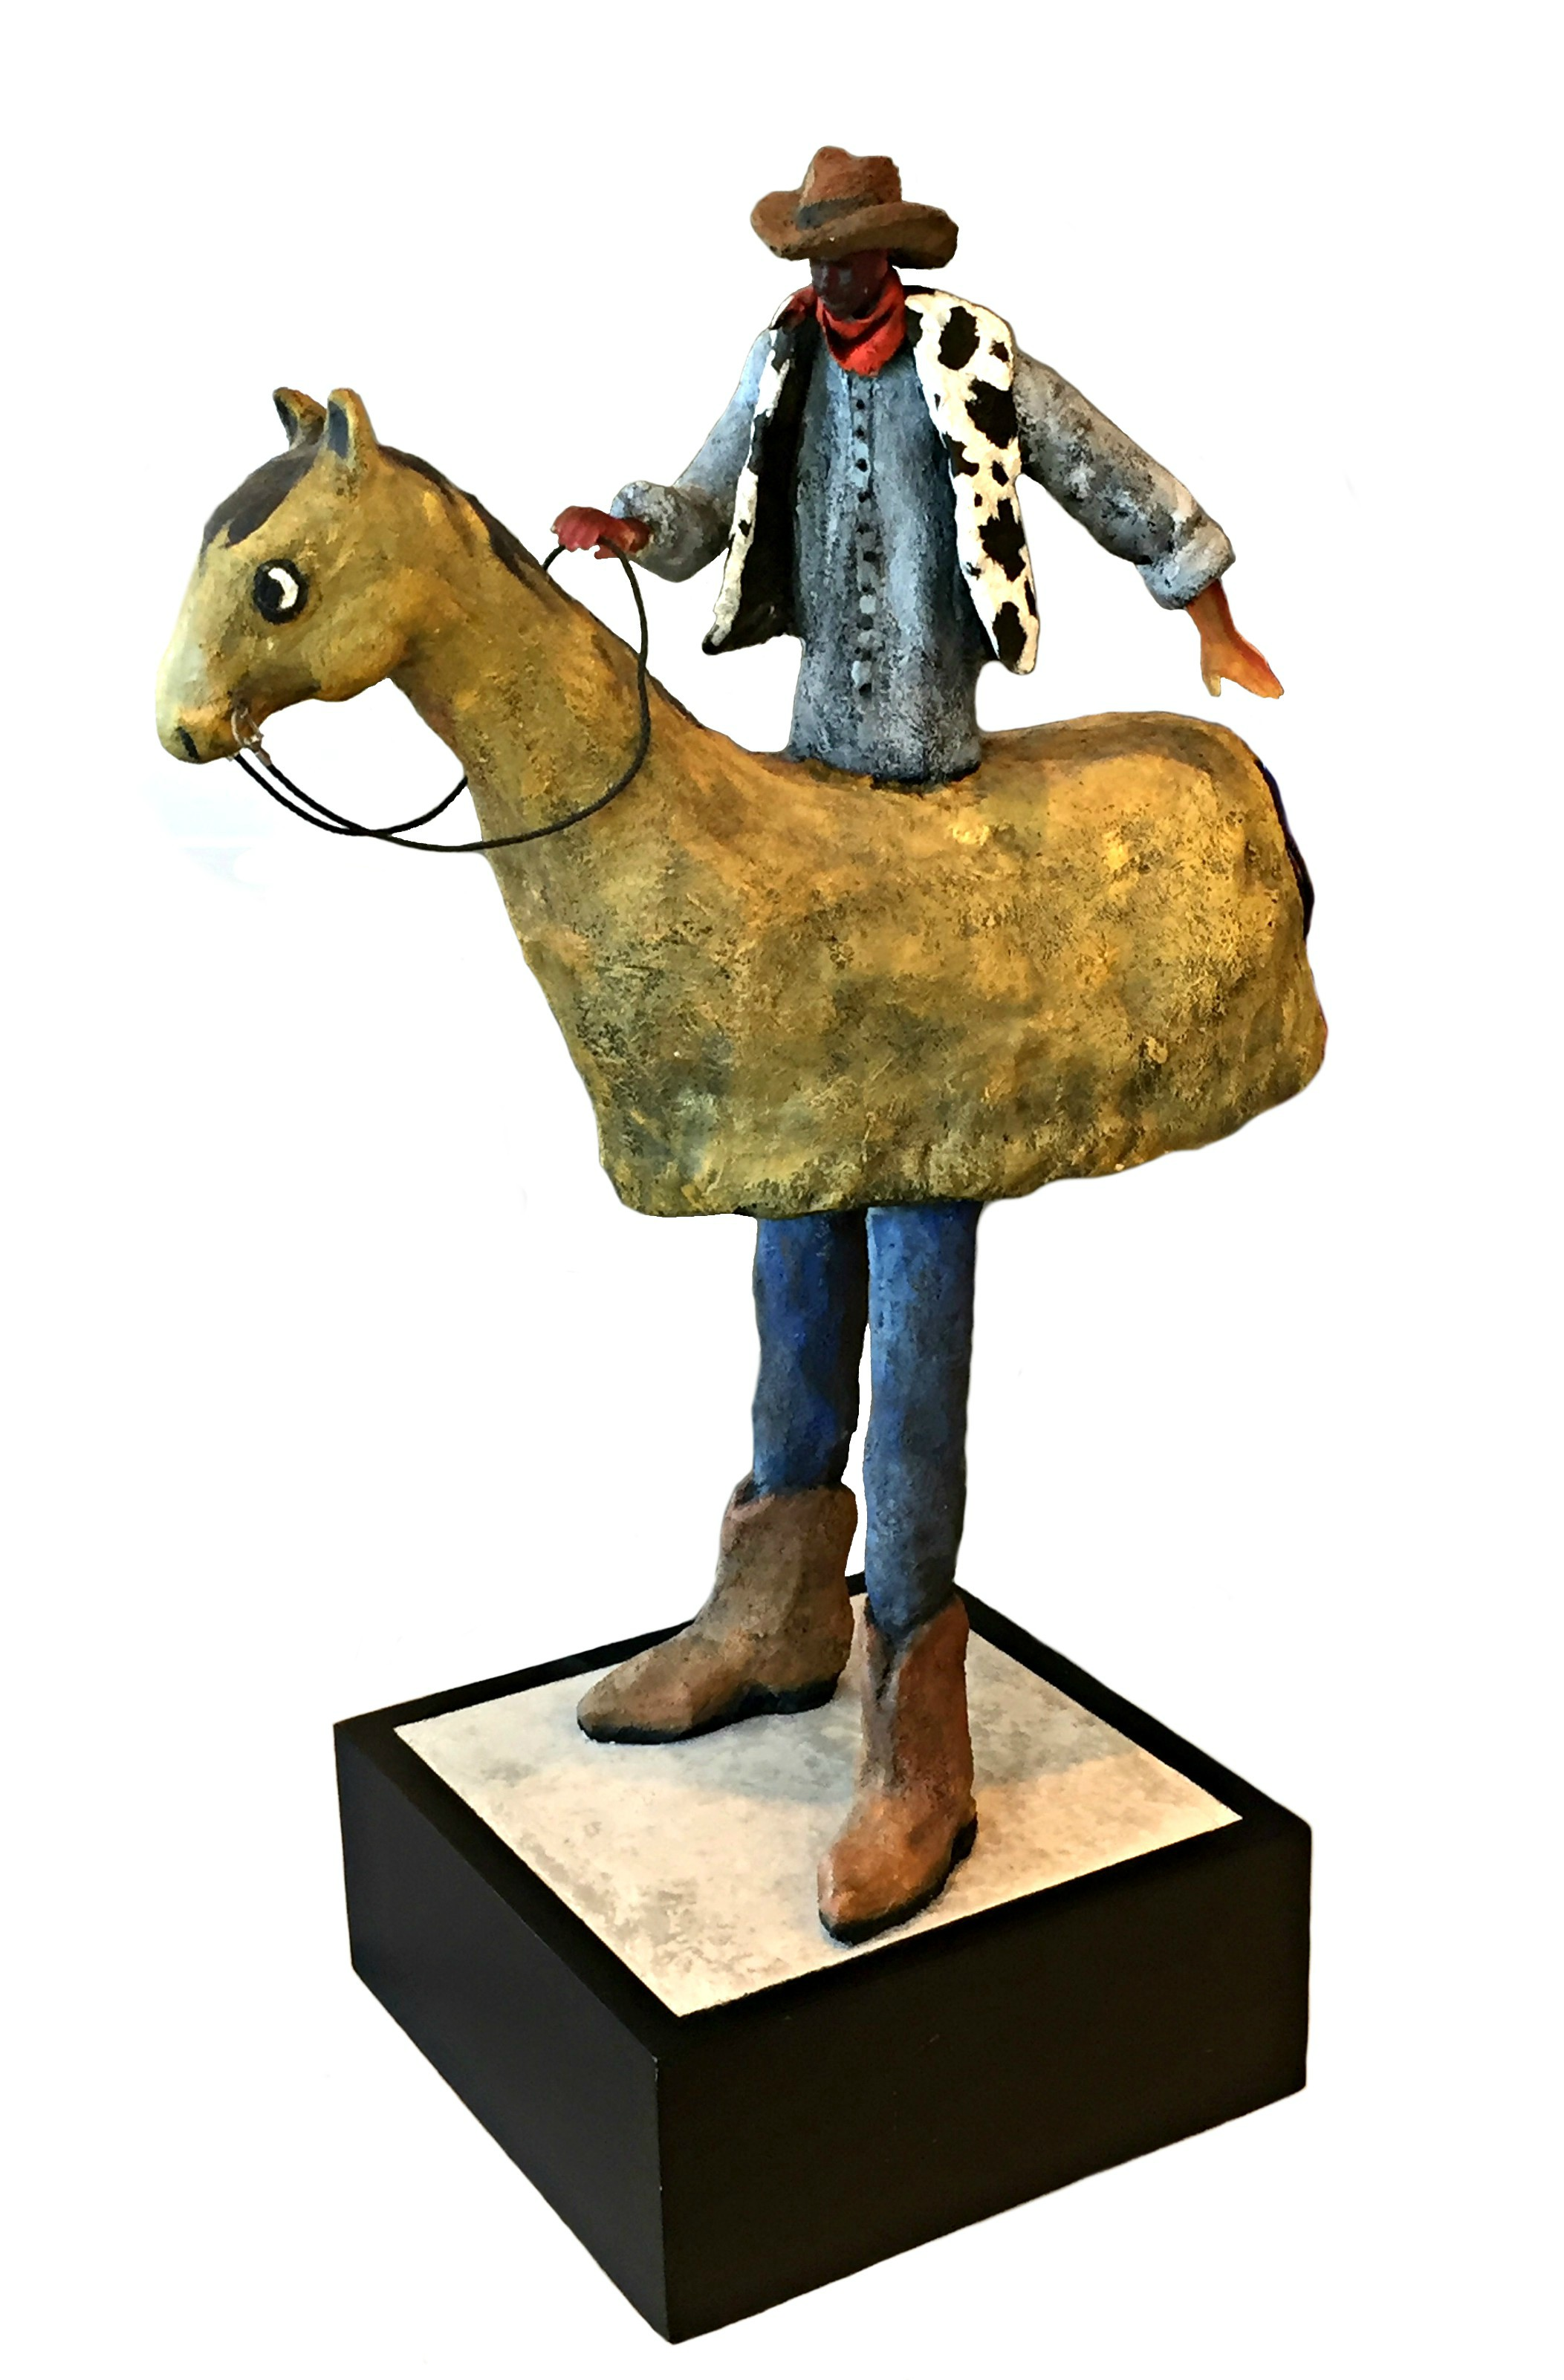 Giddy Up, glass and concrete cowboy sculpture by Connie Geerts | Effusion Art Gallery + Cast Glass Studio, Invermere BC